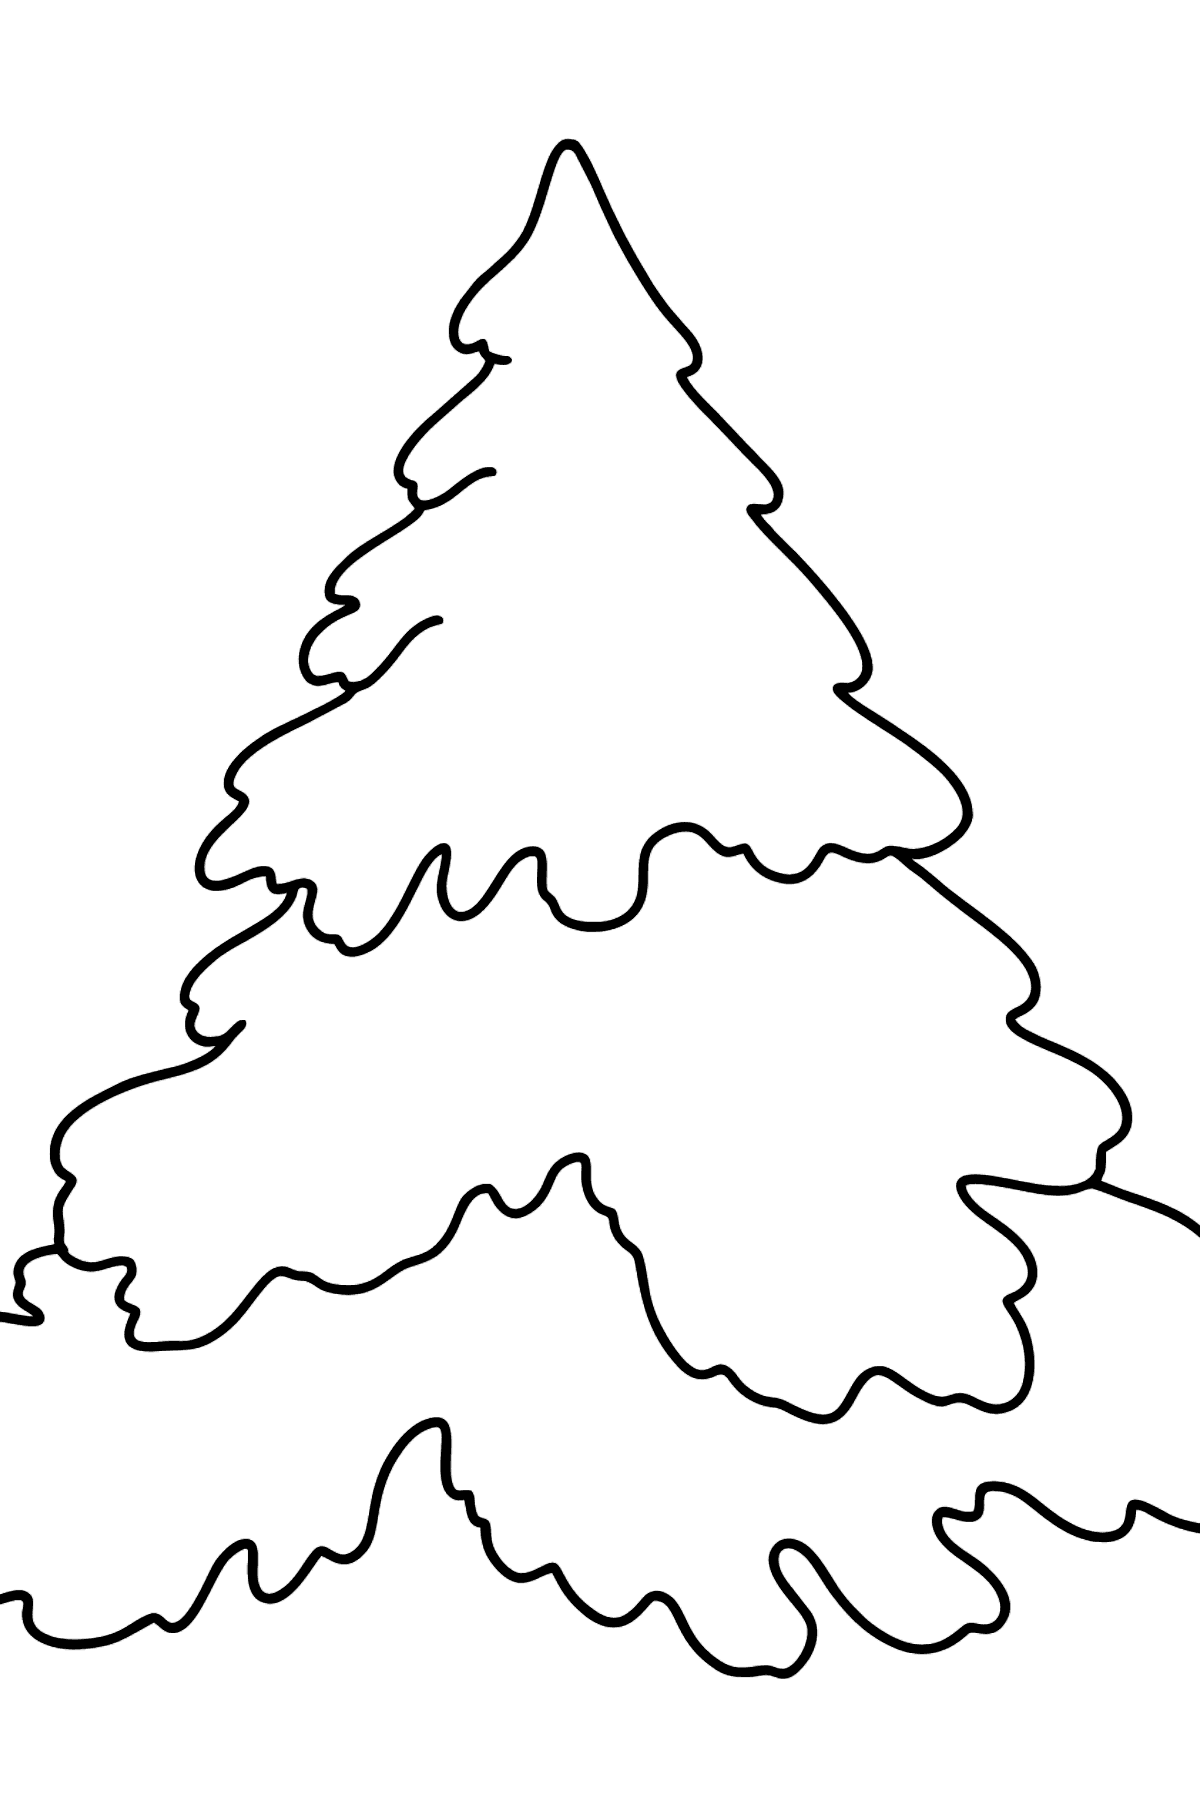 Spruce Tree coloring page - Coloring Pages for Kids